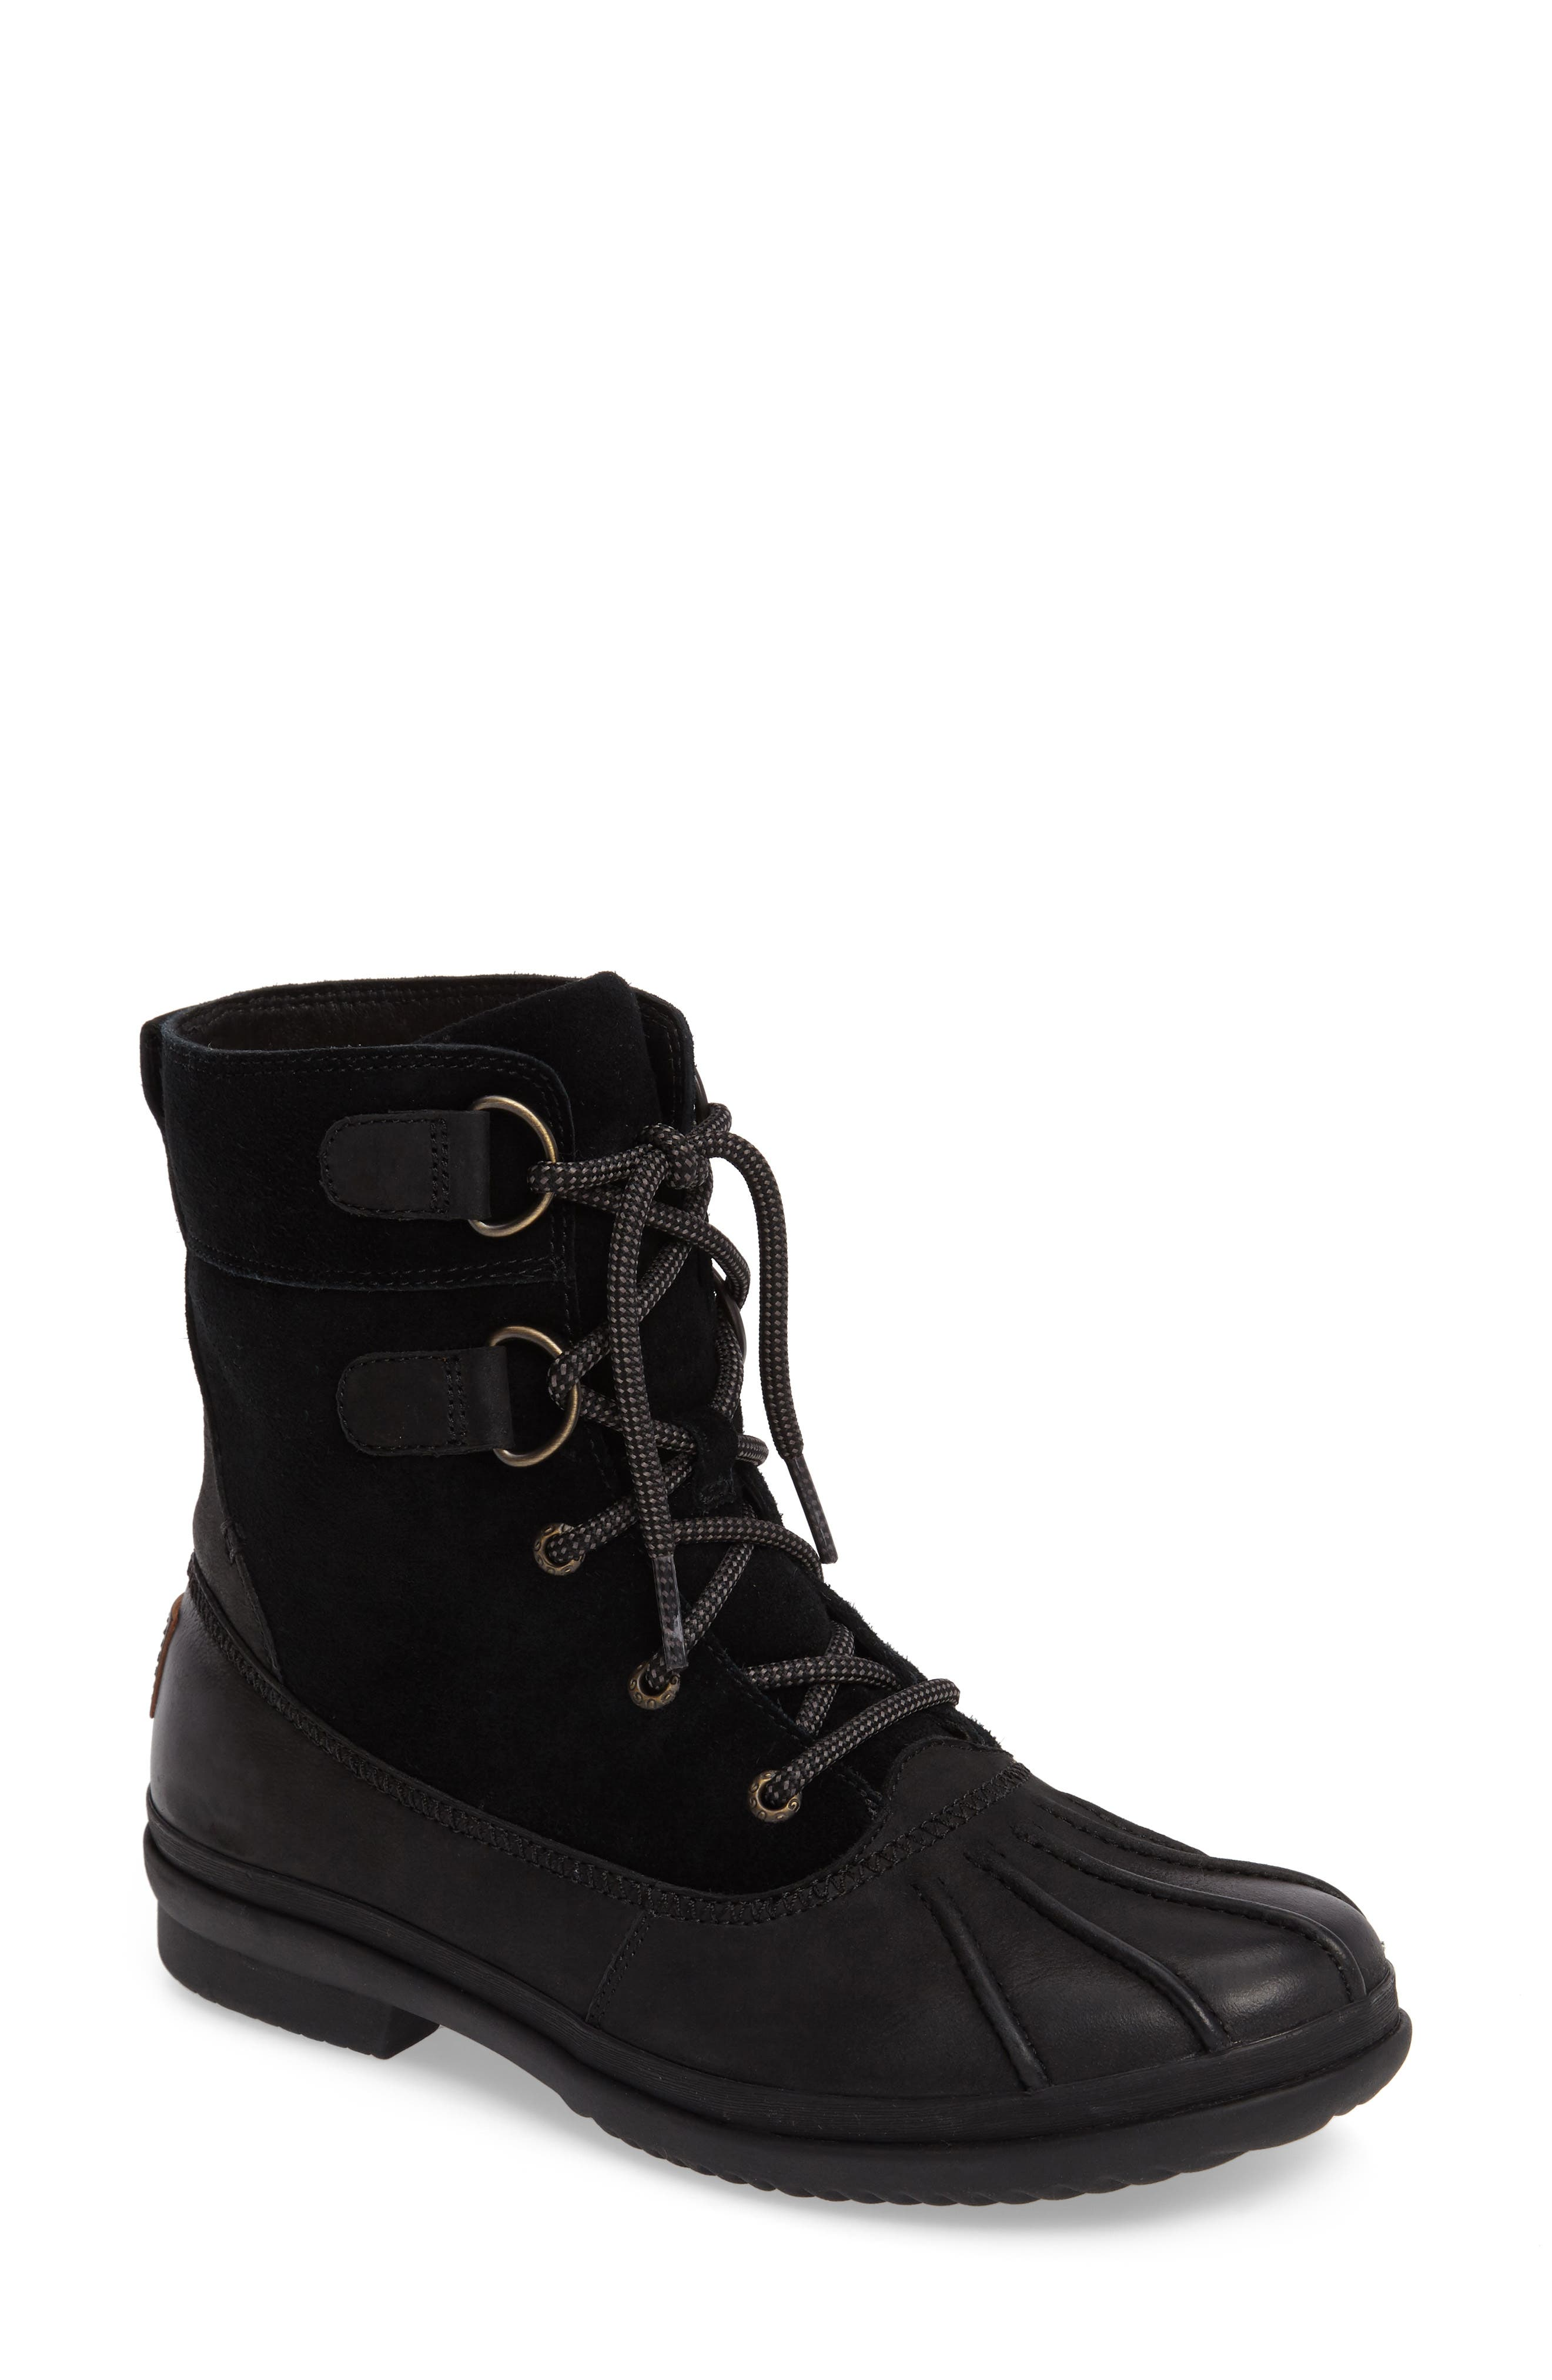 Azaria Waterproof Boot,                         Main,                         color, Black Leather